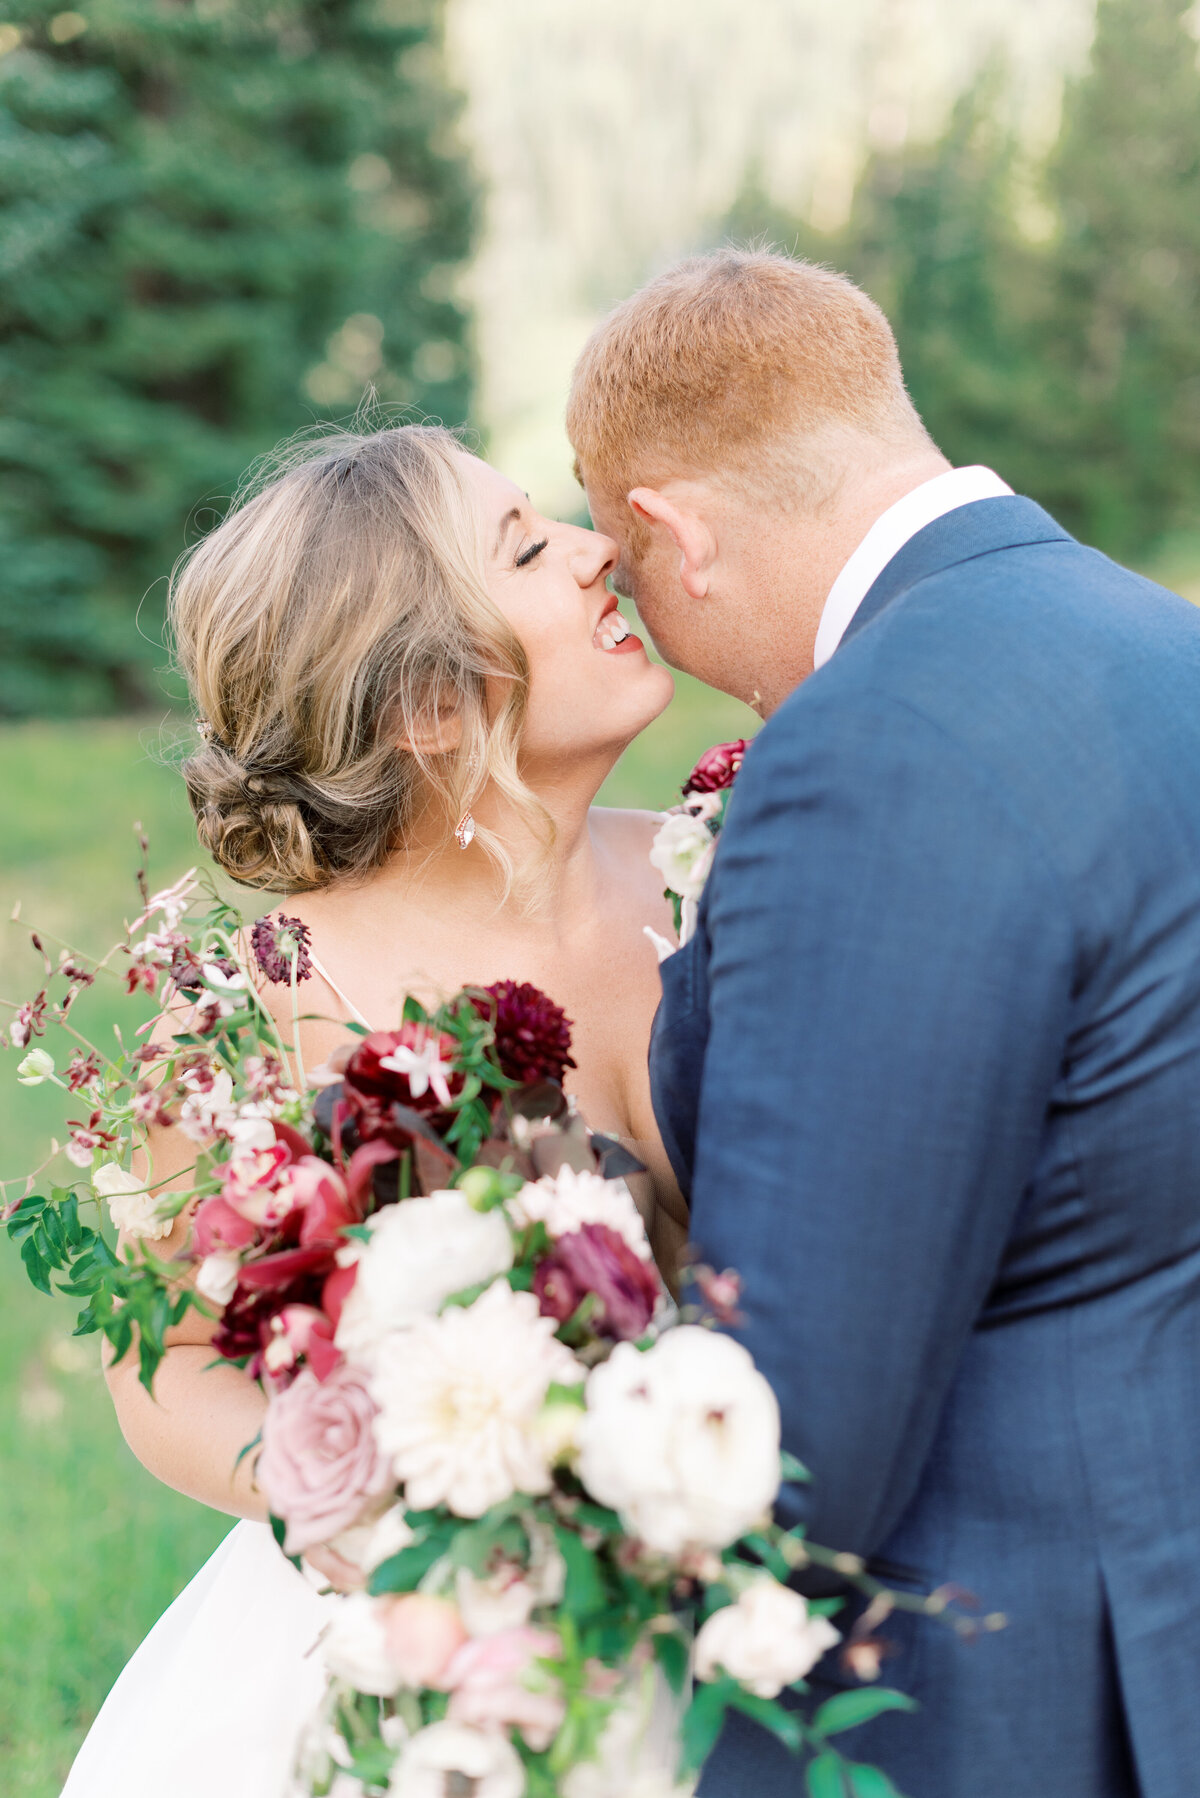 Melissa Brielle Photography Colorado Fine Art Wedding Engagement Photographer Photograph Melissa Minkner Light Airy Luxury High End11